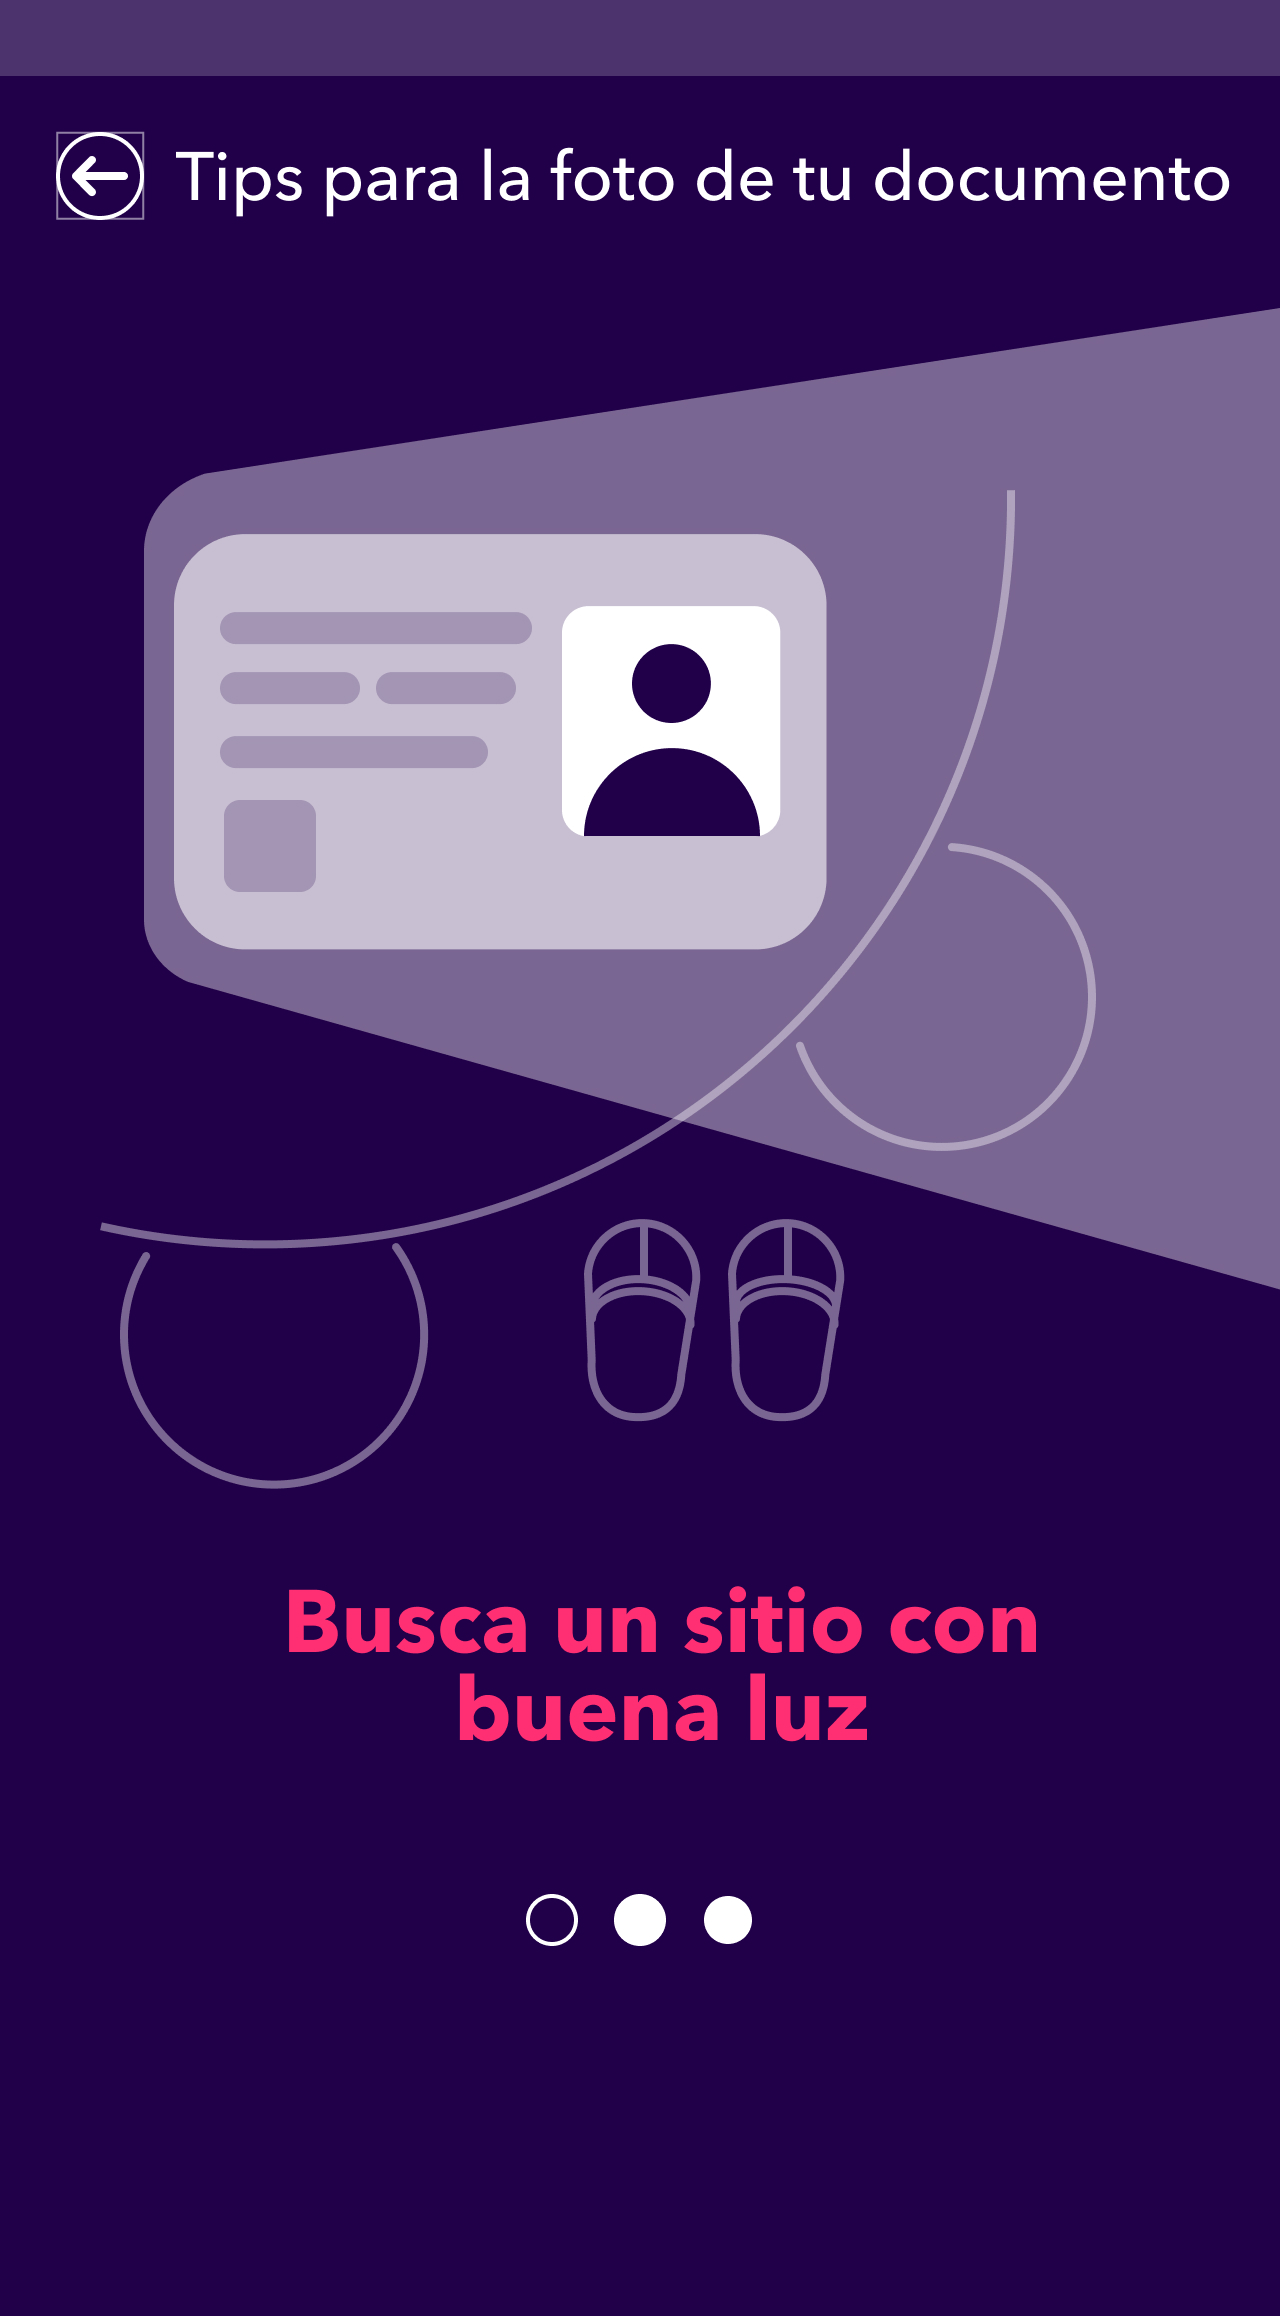 seguridad_biometria_tips_copy_16.2.jpg